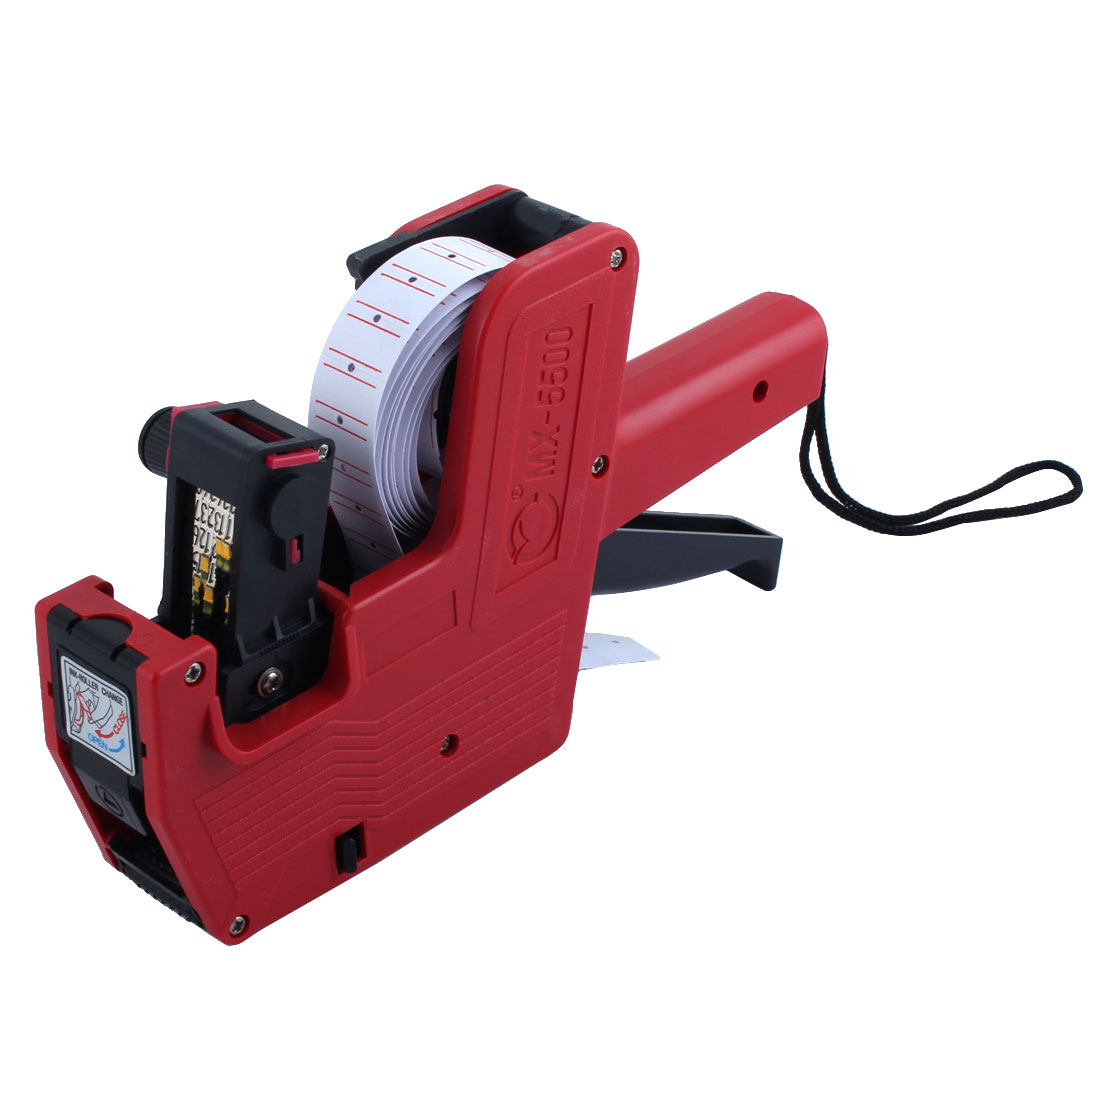 Plastic 8 Digits Hand Held Shopping Price Labeller Label Tag Gun with Strap Red